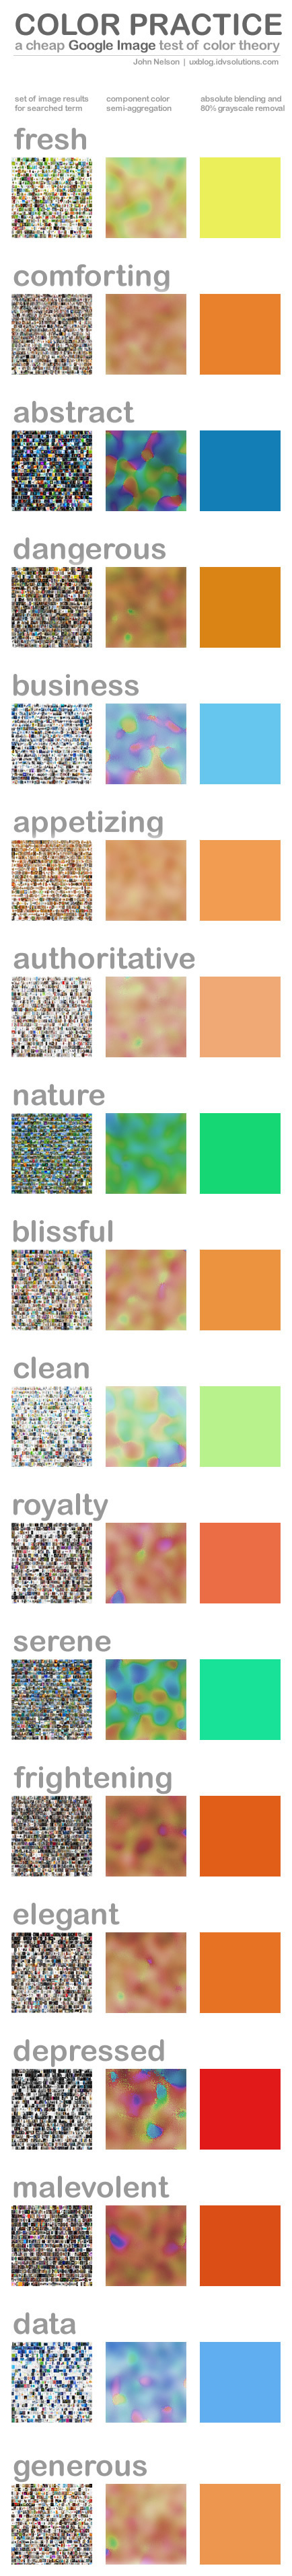 Color Theory Squeezed through the Google-ifier | Social Foraging | Scoop.it